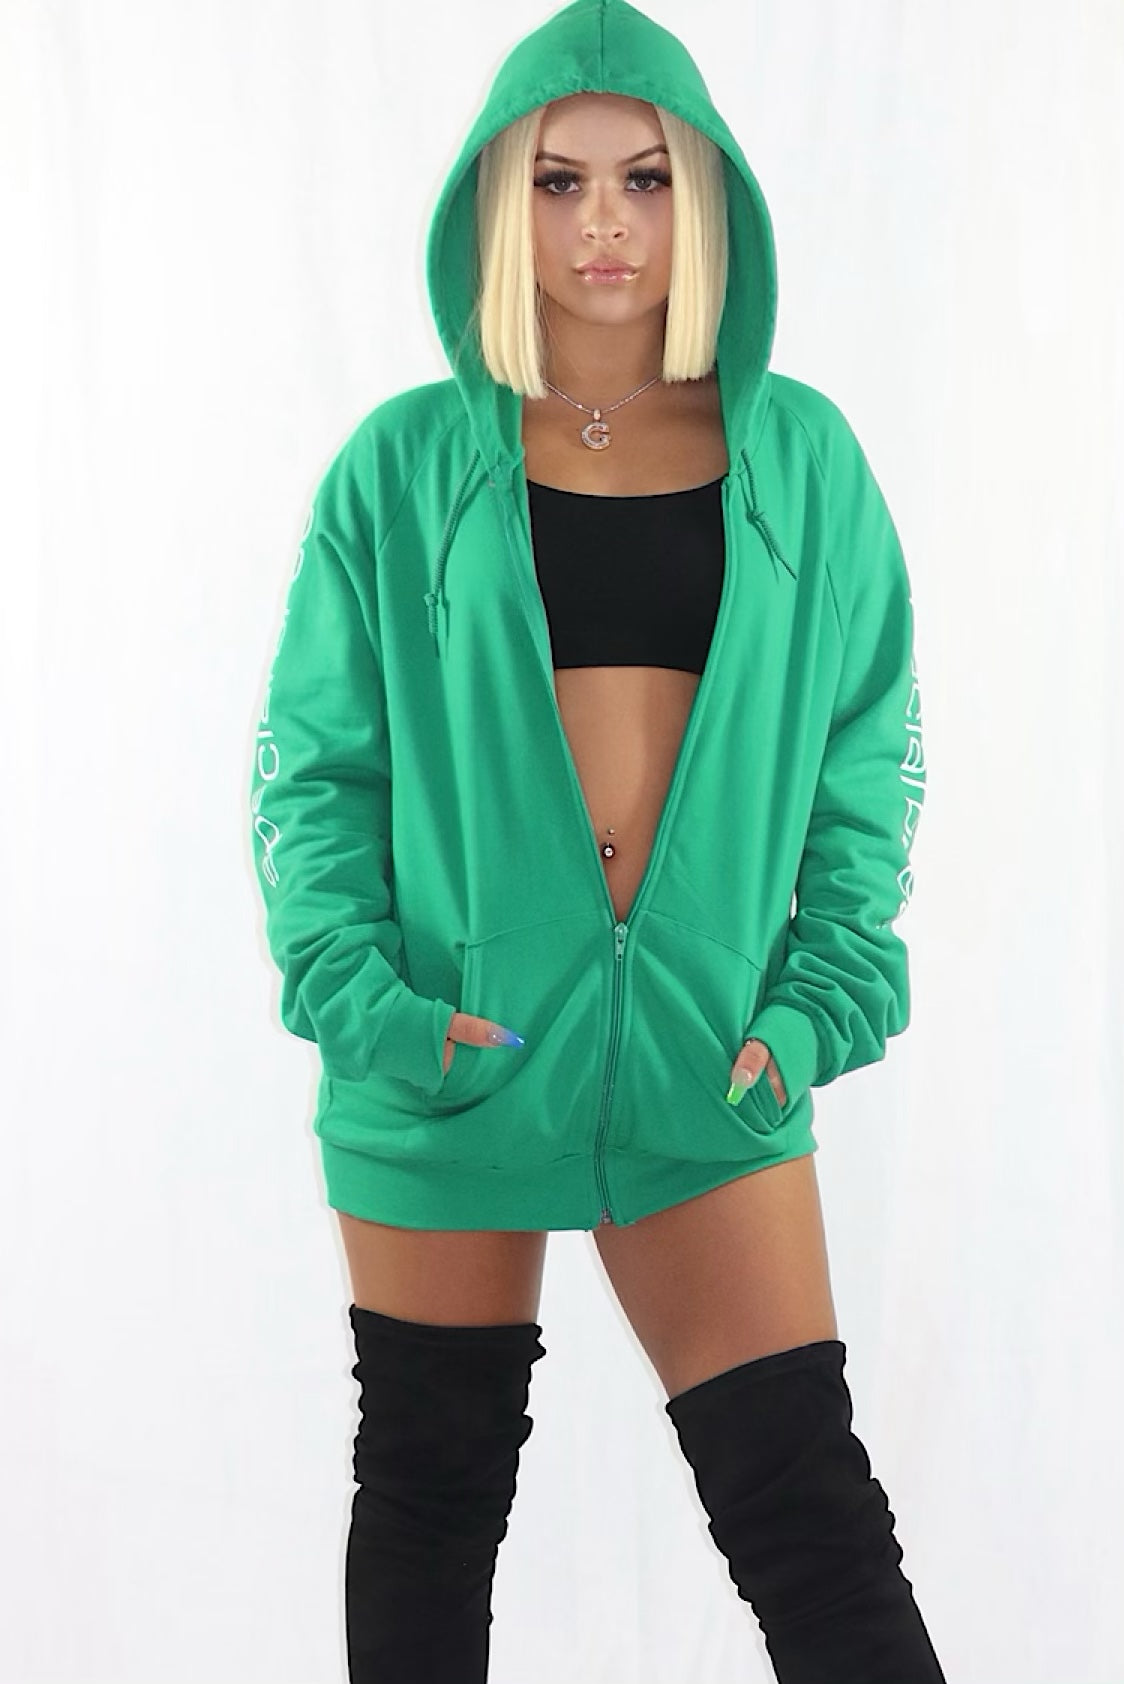 Green Zipped Hoodie with White Logo